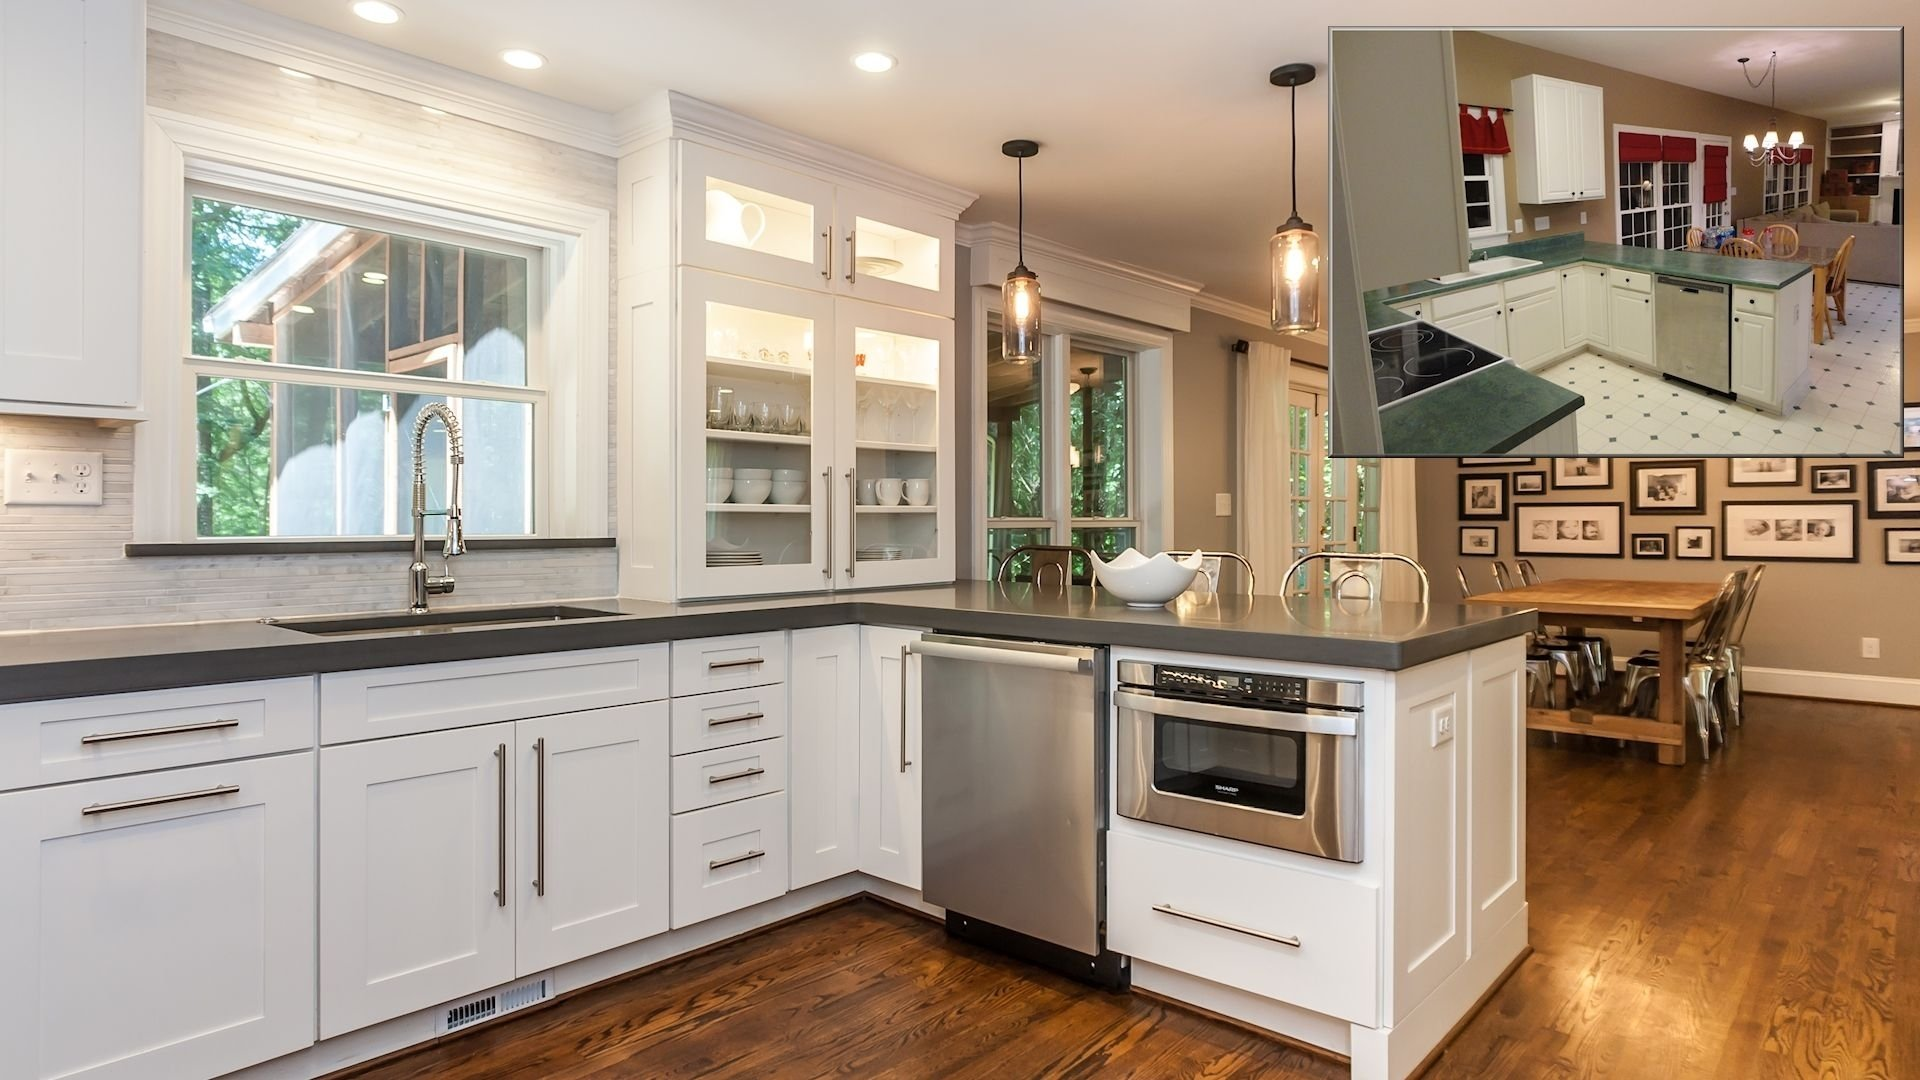 10 Fabulous Kitchen Remodel Ideas Before And After kitchen remodel ideas split level house training4green